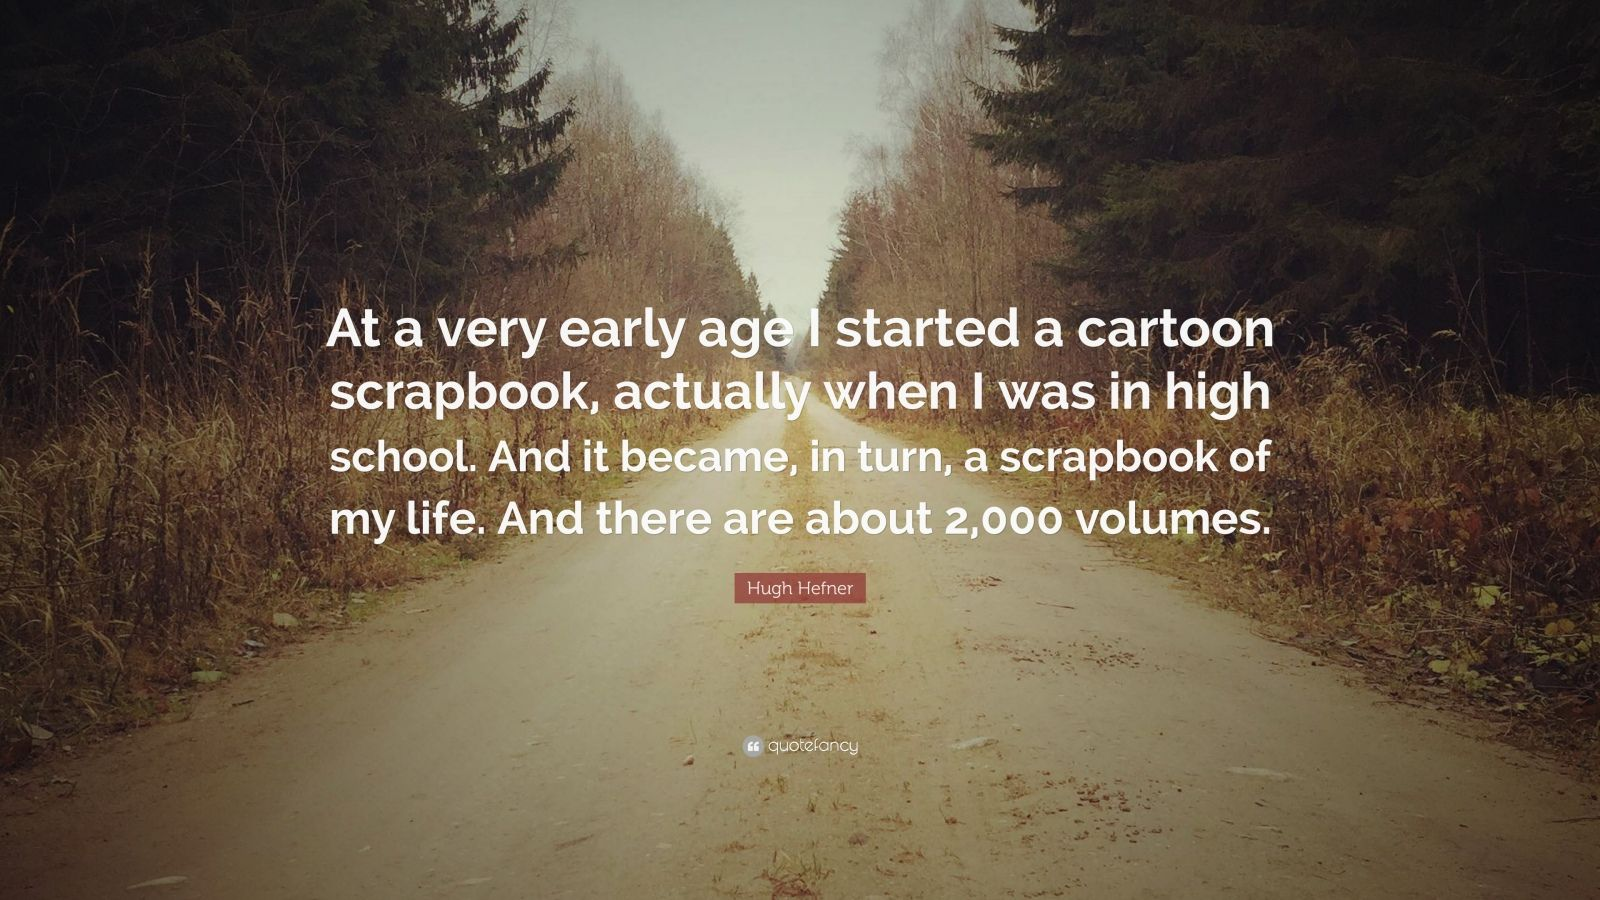 """Hugh Hefner Quote: """"At a very early age I started a cartoon scrapbook, actually when I was in high school. And it became, in turn, a scrapbook of my life. And there are about 2,000 volumes."""""""